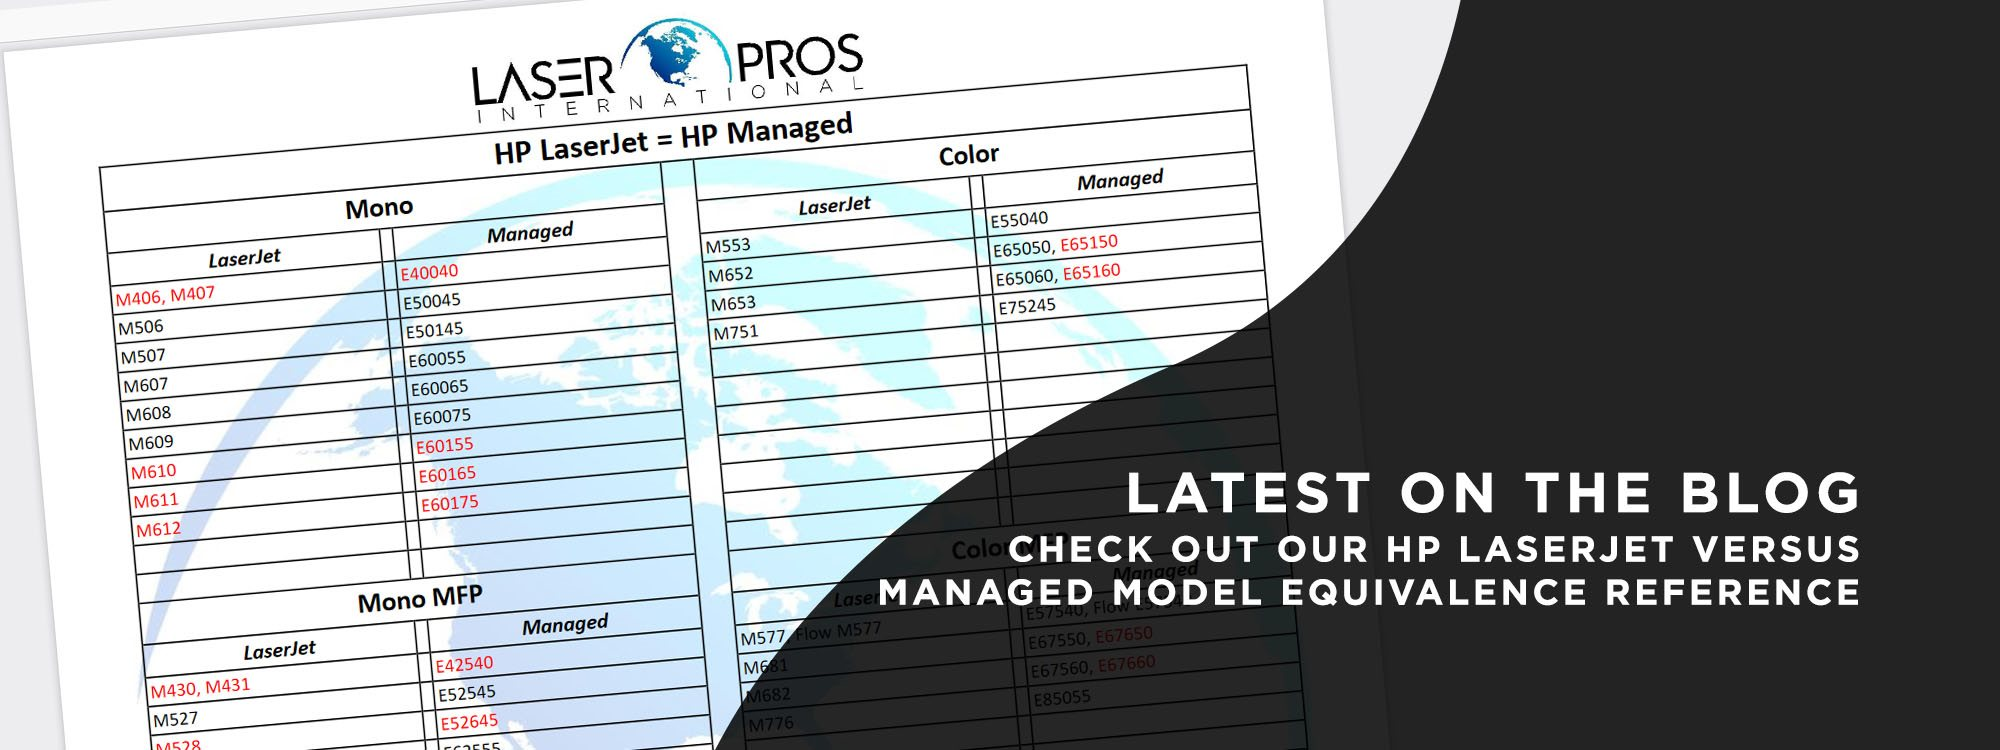 Check out latest blog HP LaserJet Managed Equivalence